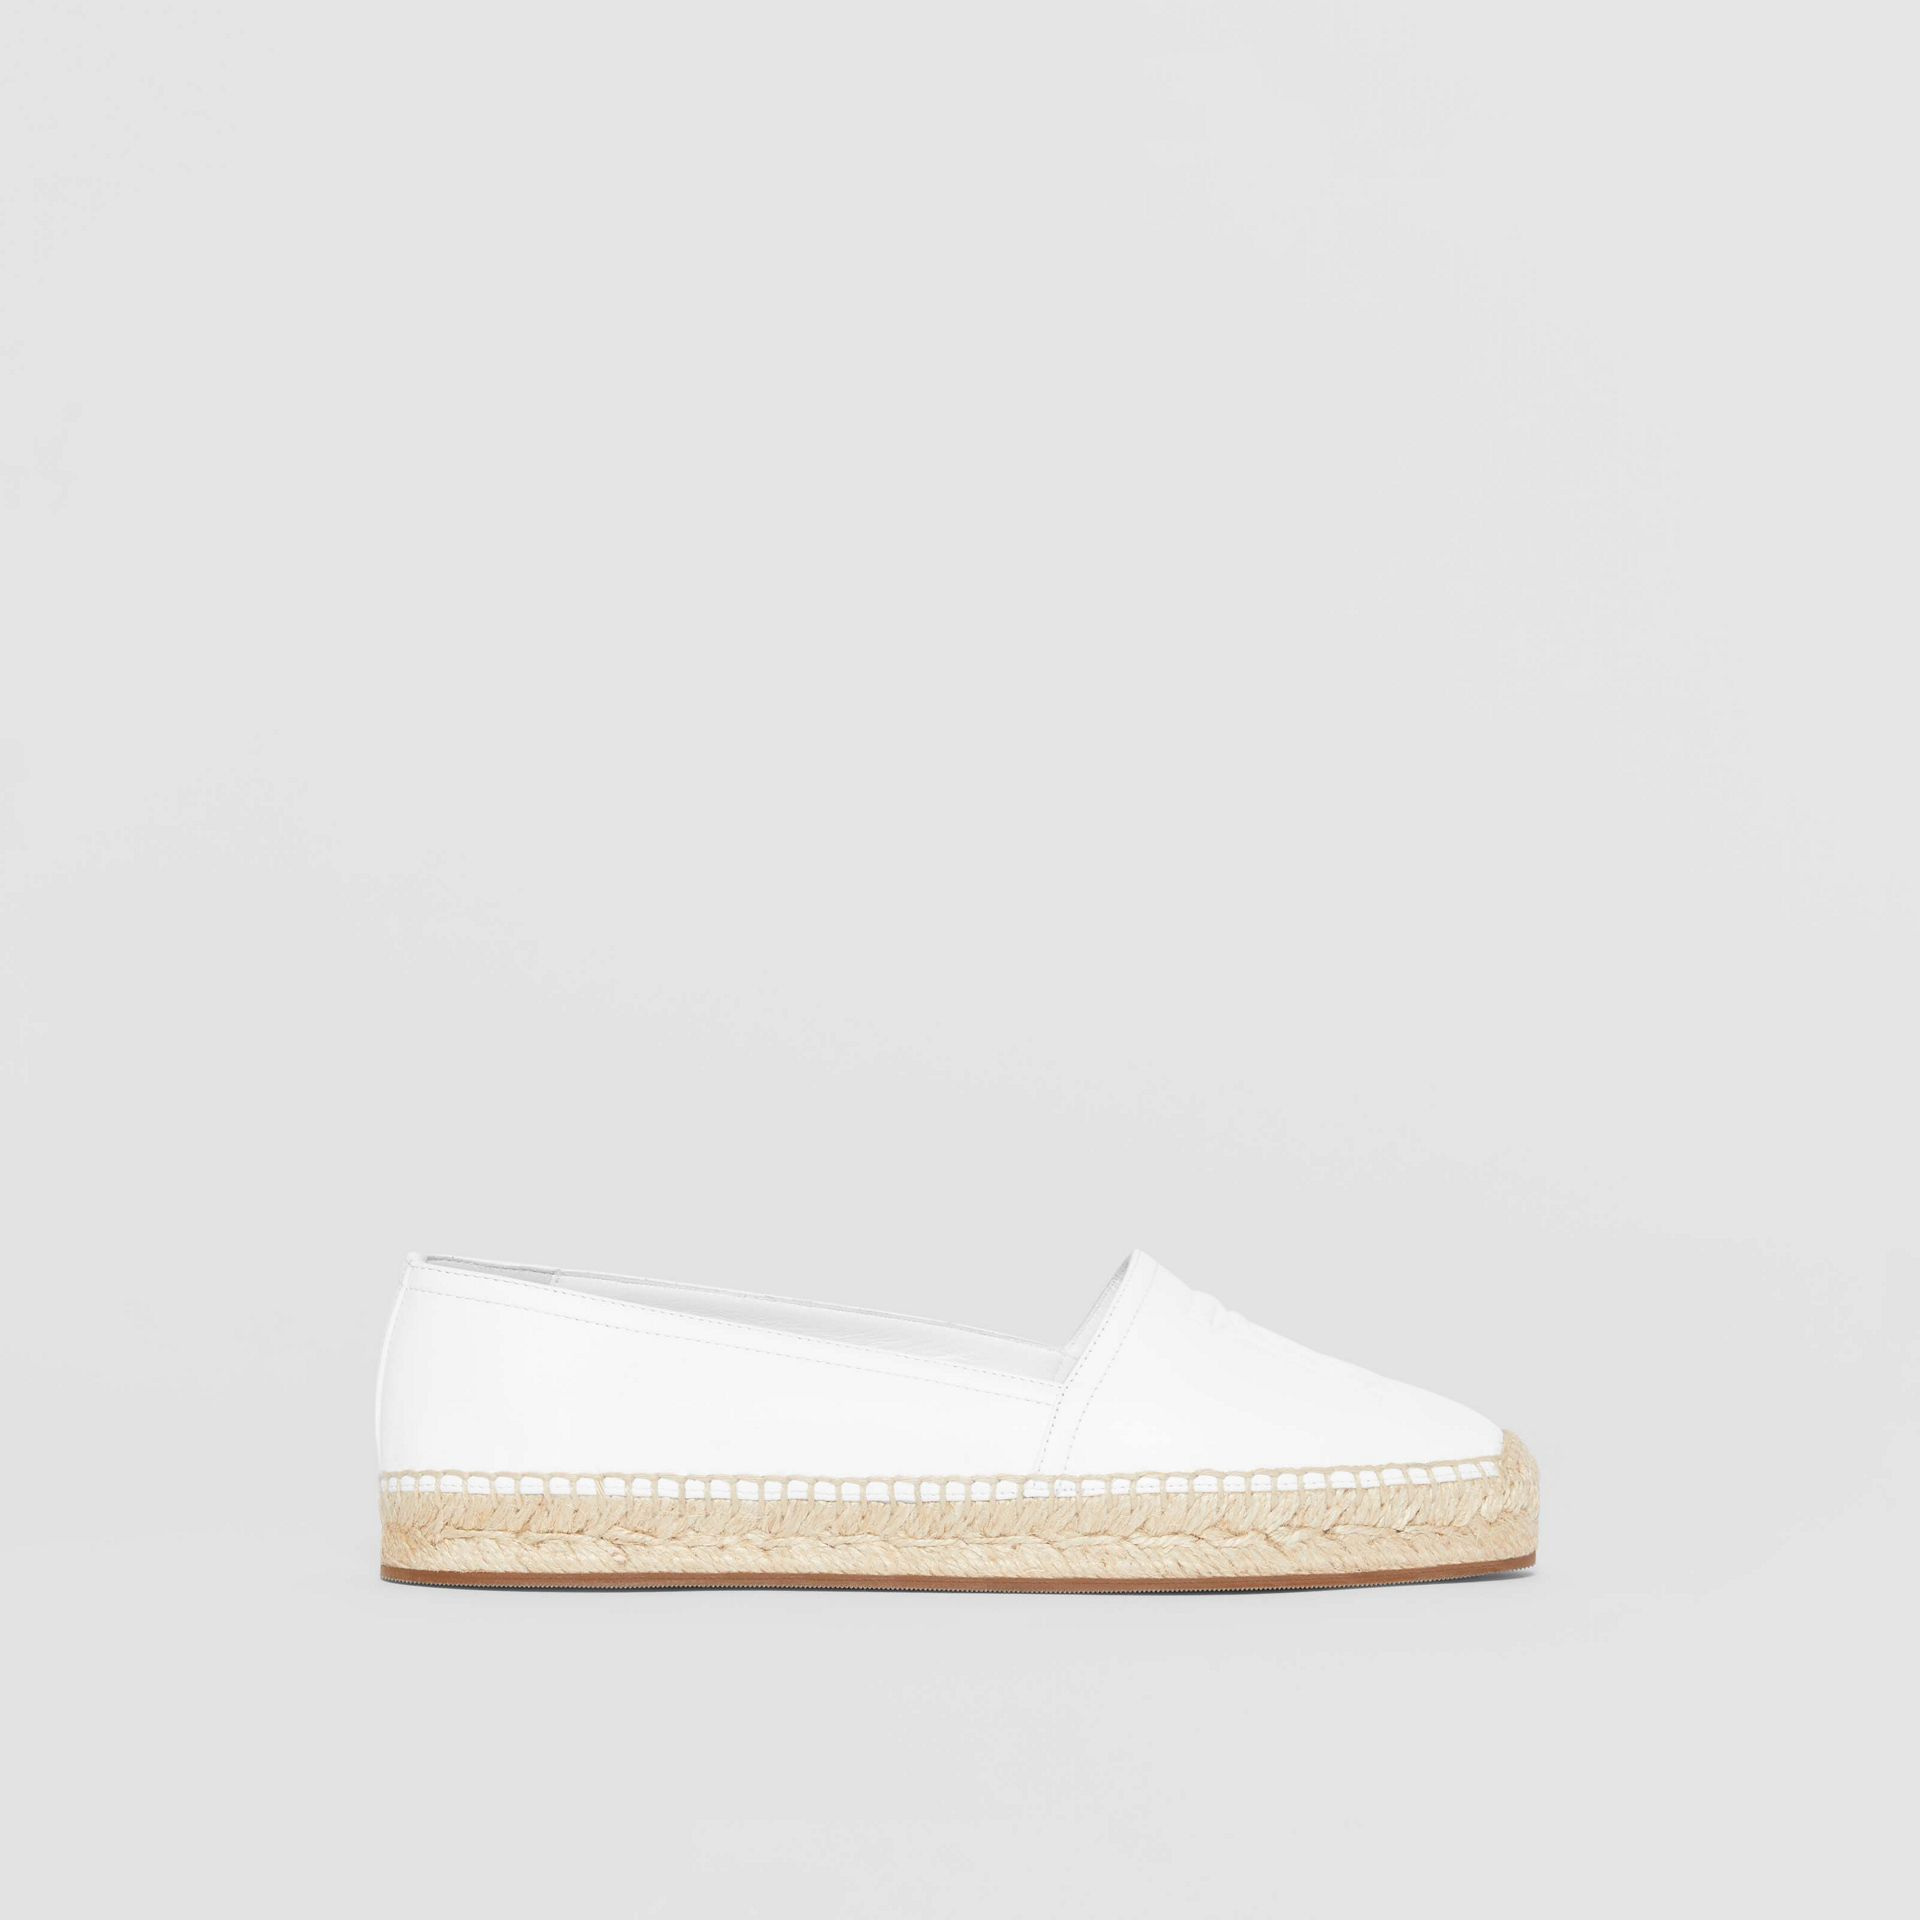 Monogram Motif Leather Espadrilles in White - Women | Burberry Australia - gallery image 5